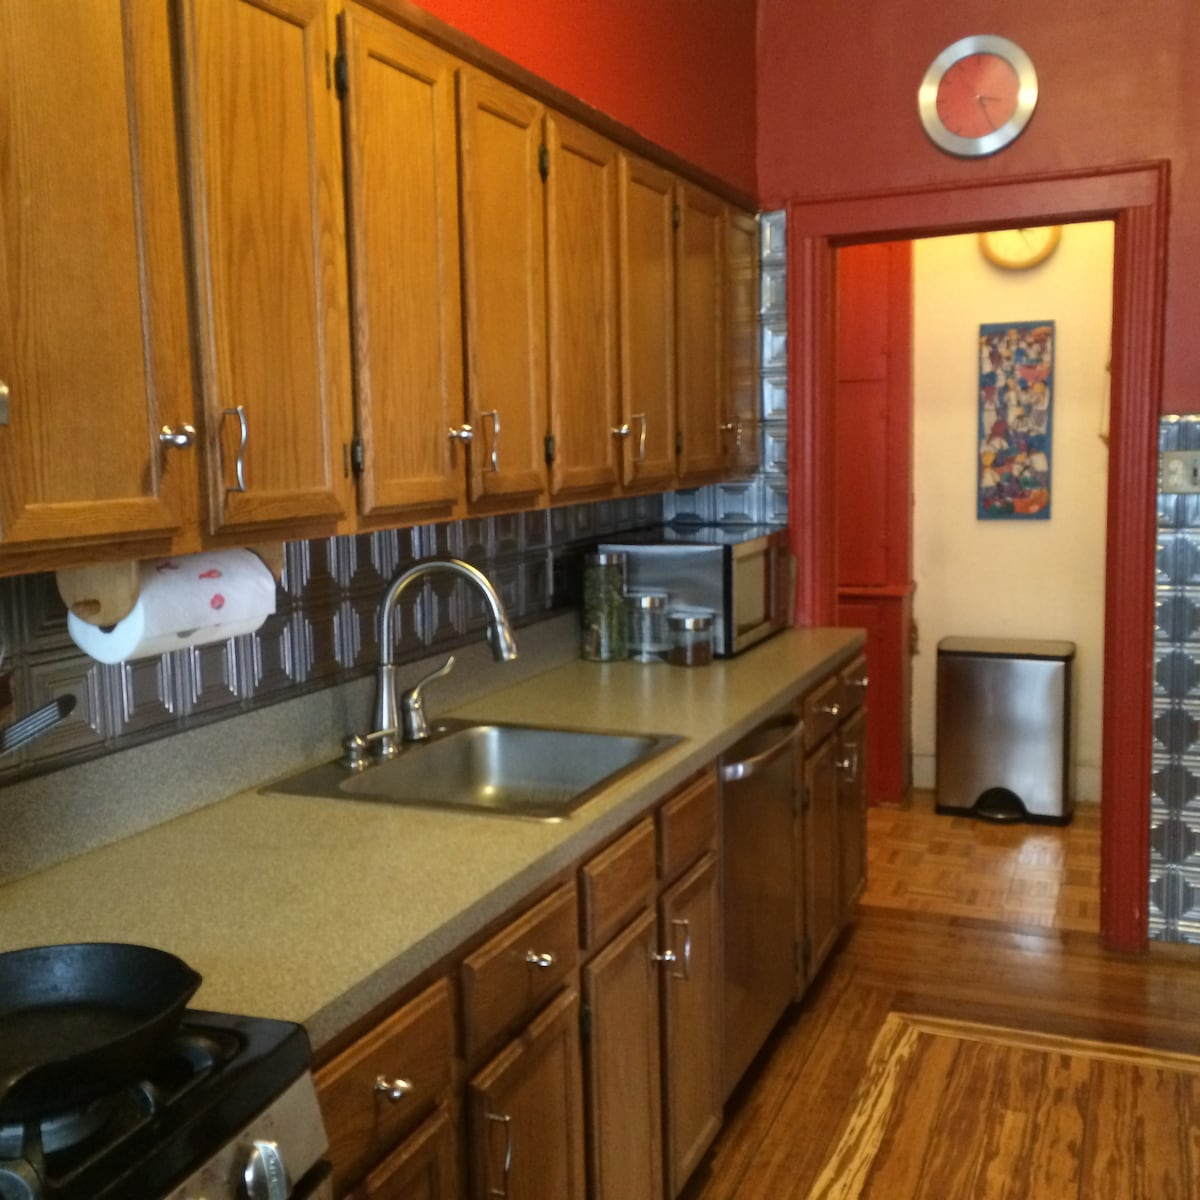 Cook at home! Full kitchen with counter/stools opposite wall. Dishwasher and powerful gas stove. Separate pantry.